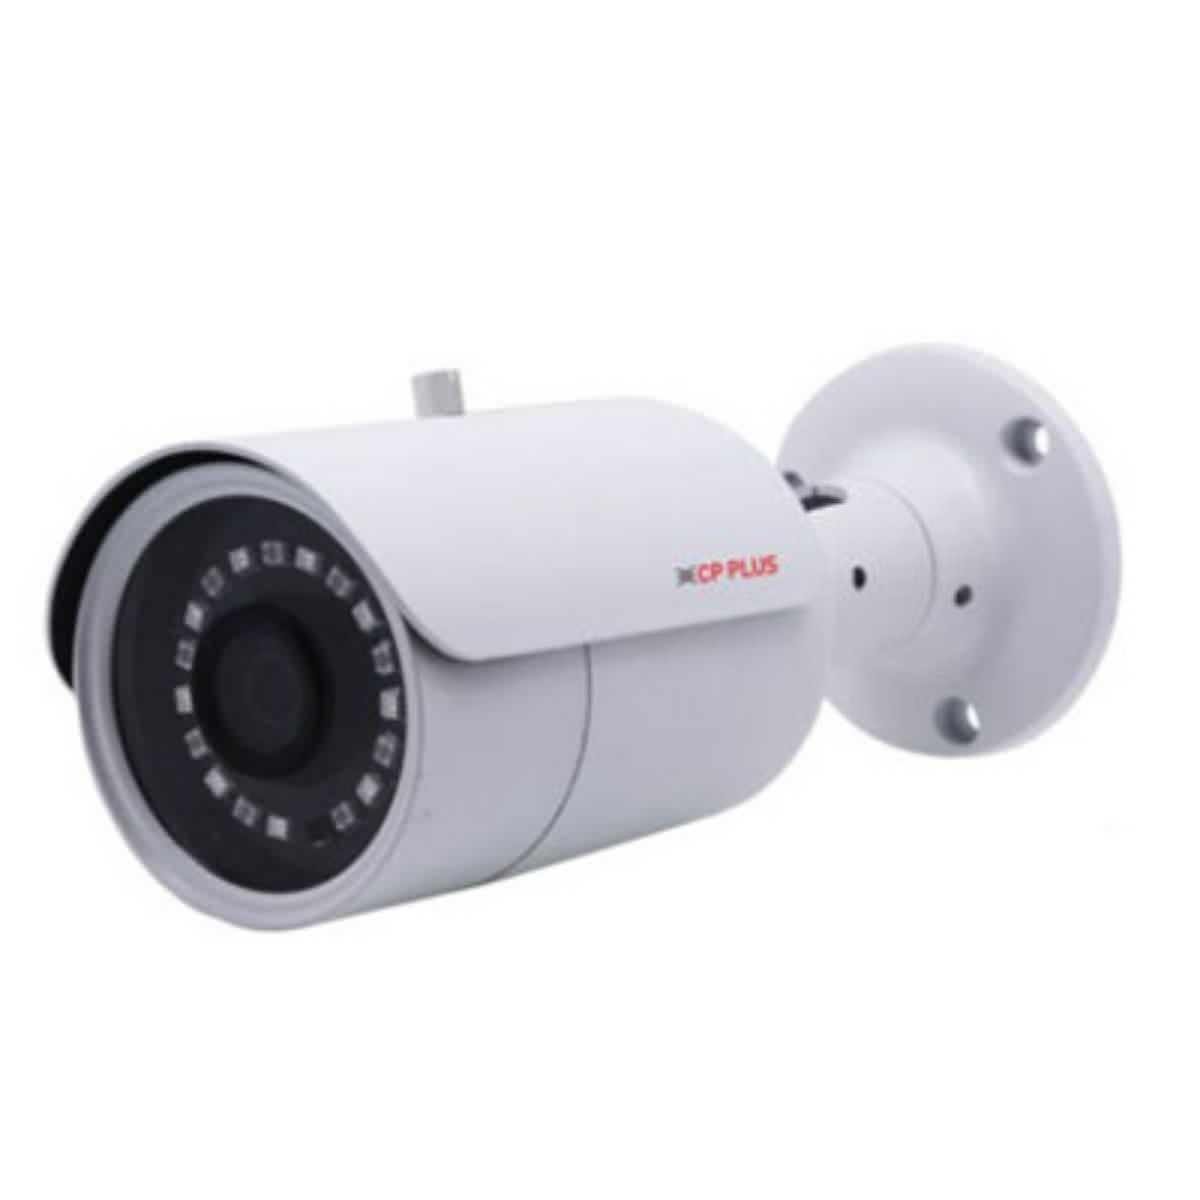 CP Plus CP-VAC-T10L3 1 MP 30M IR Bullet Camera (White)